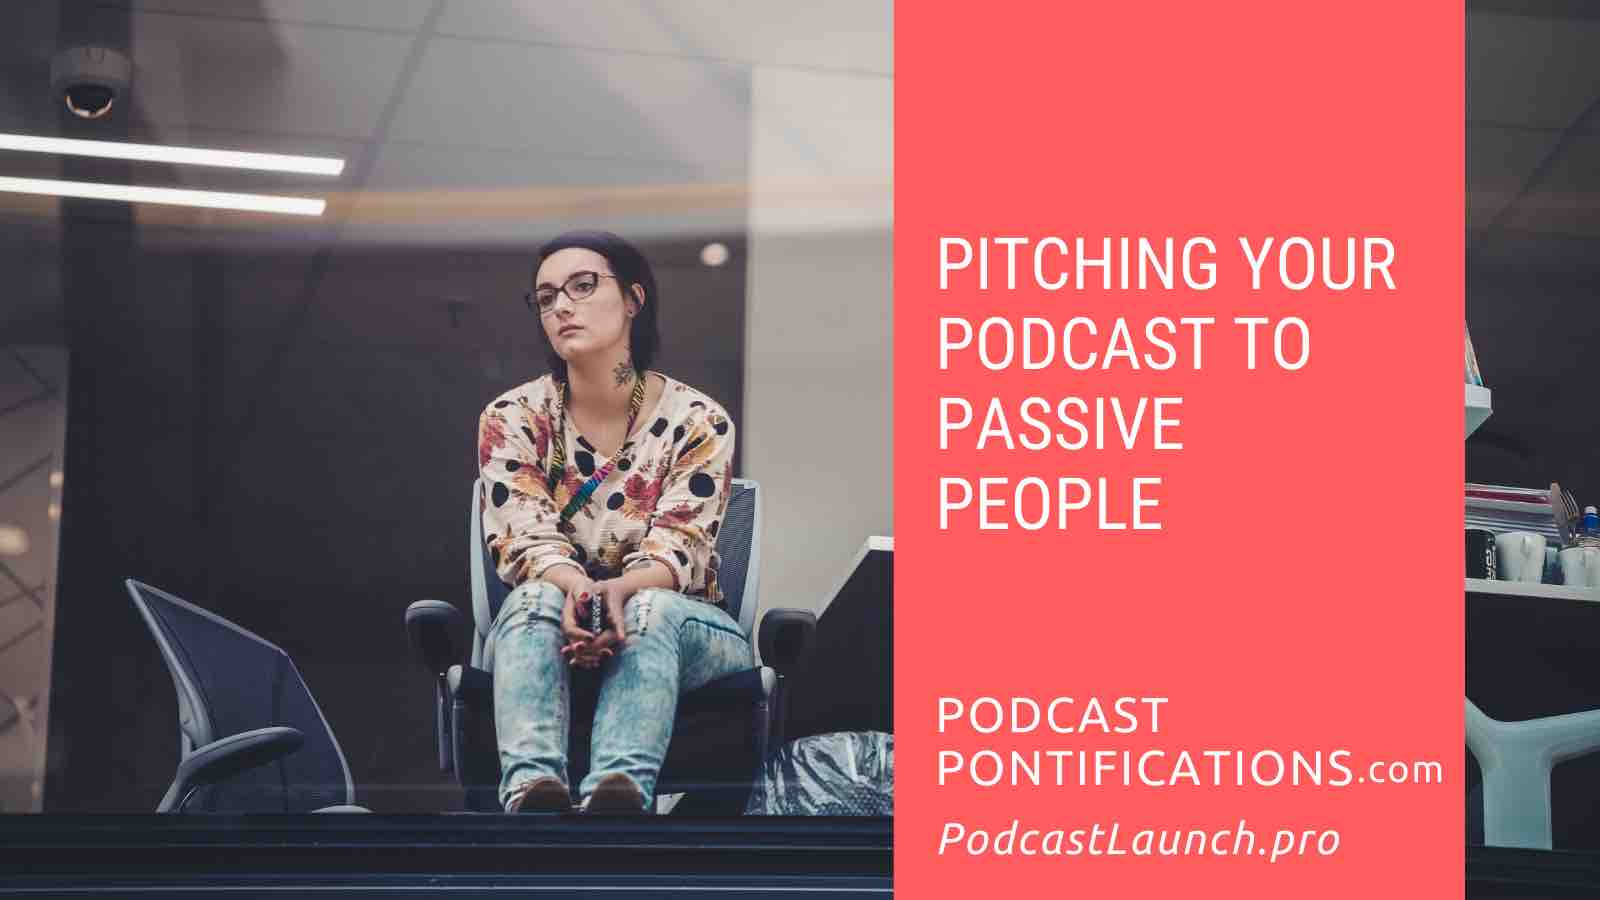 Pitching Your Podcast To Passive People